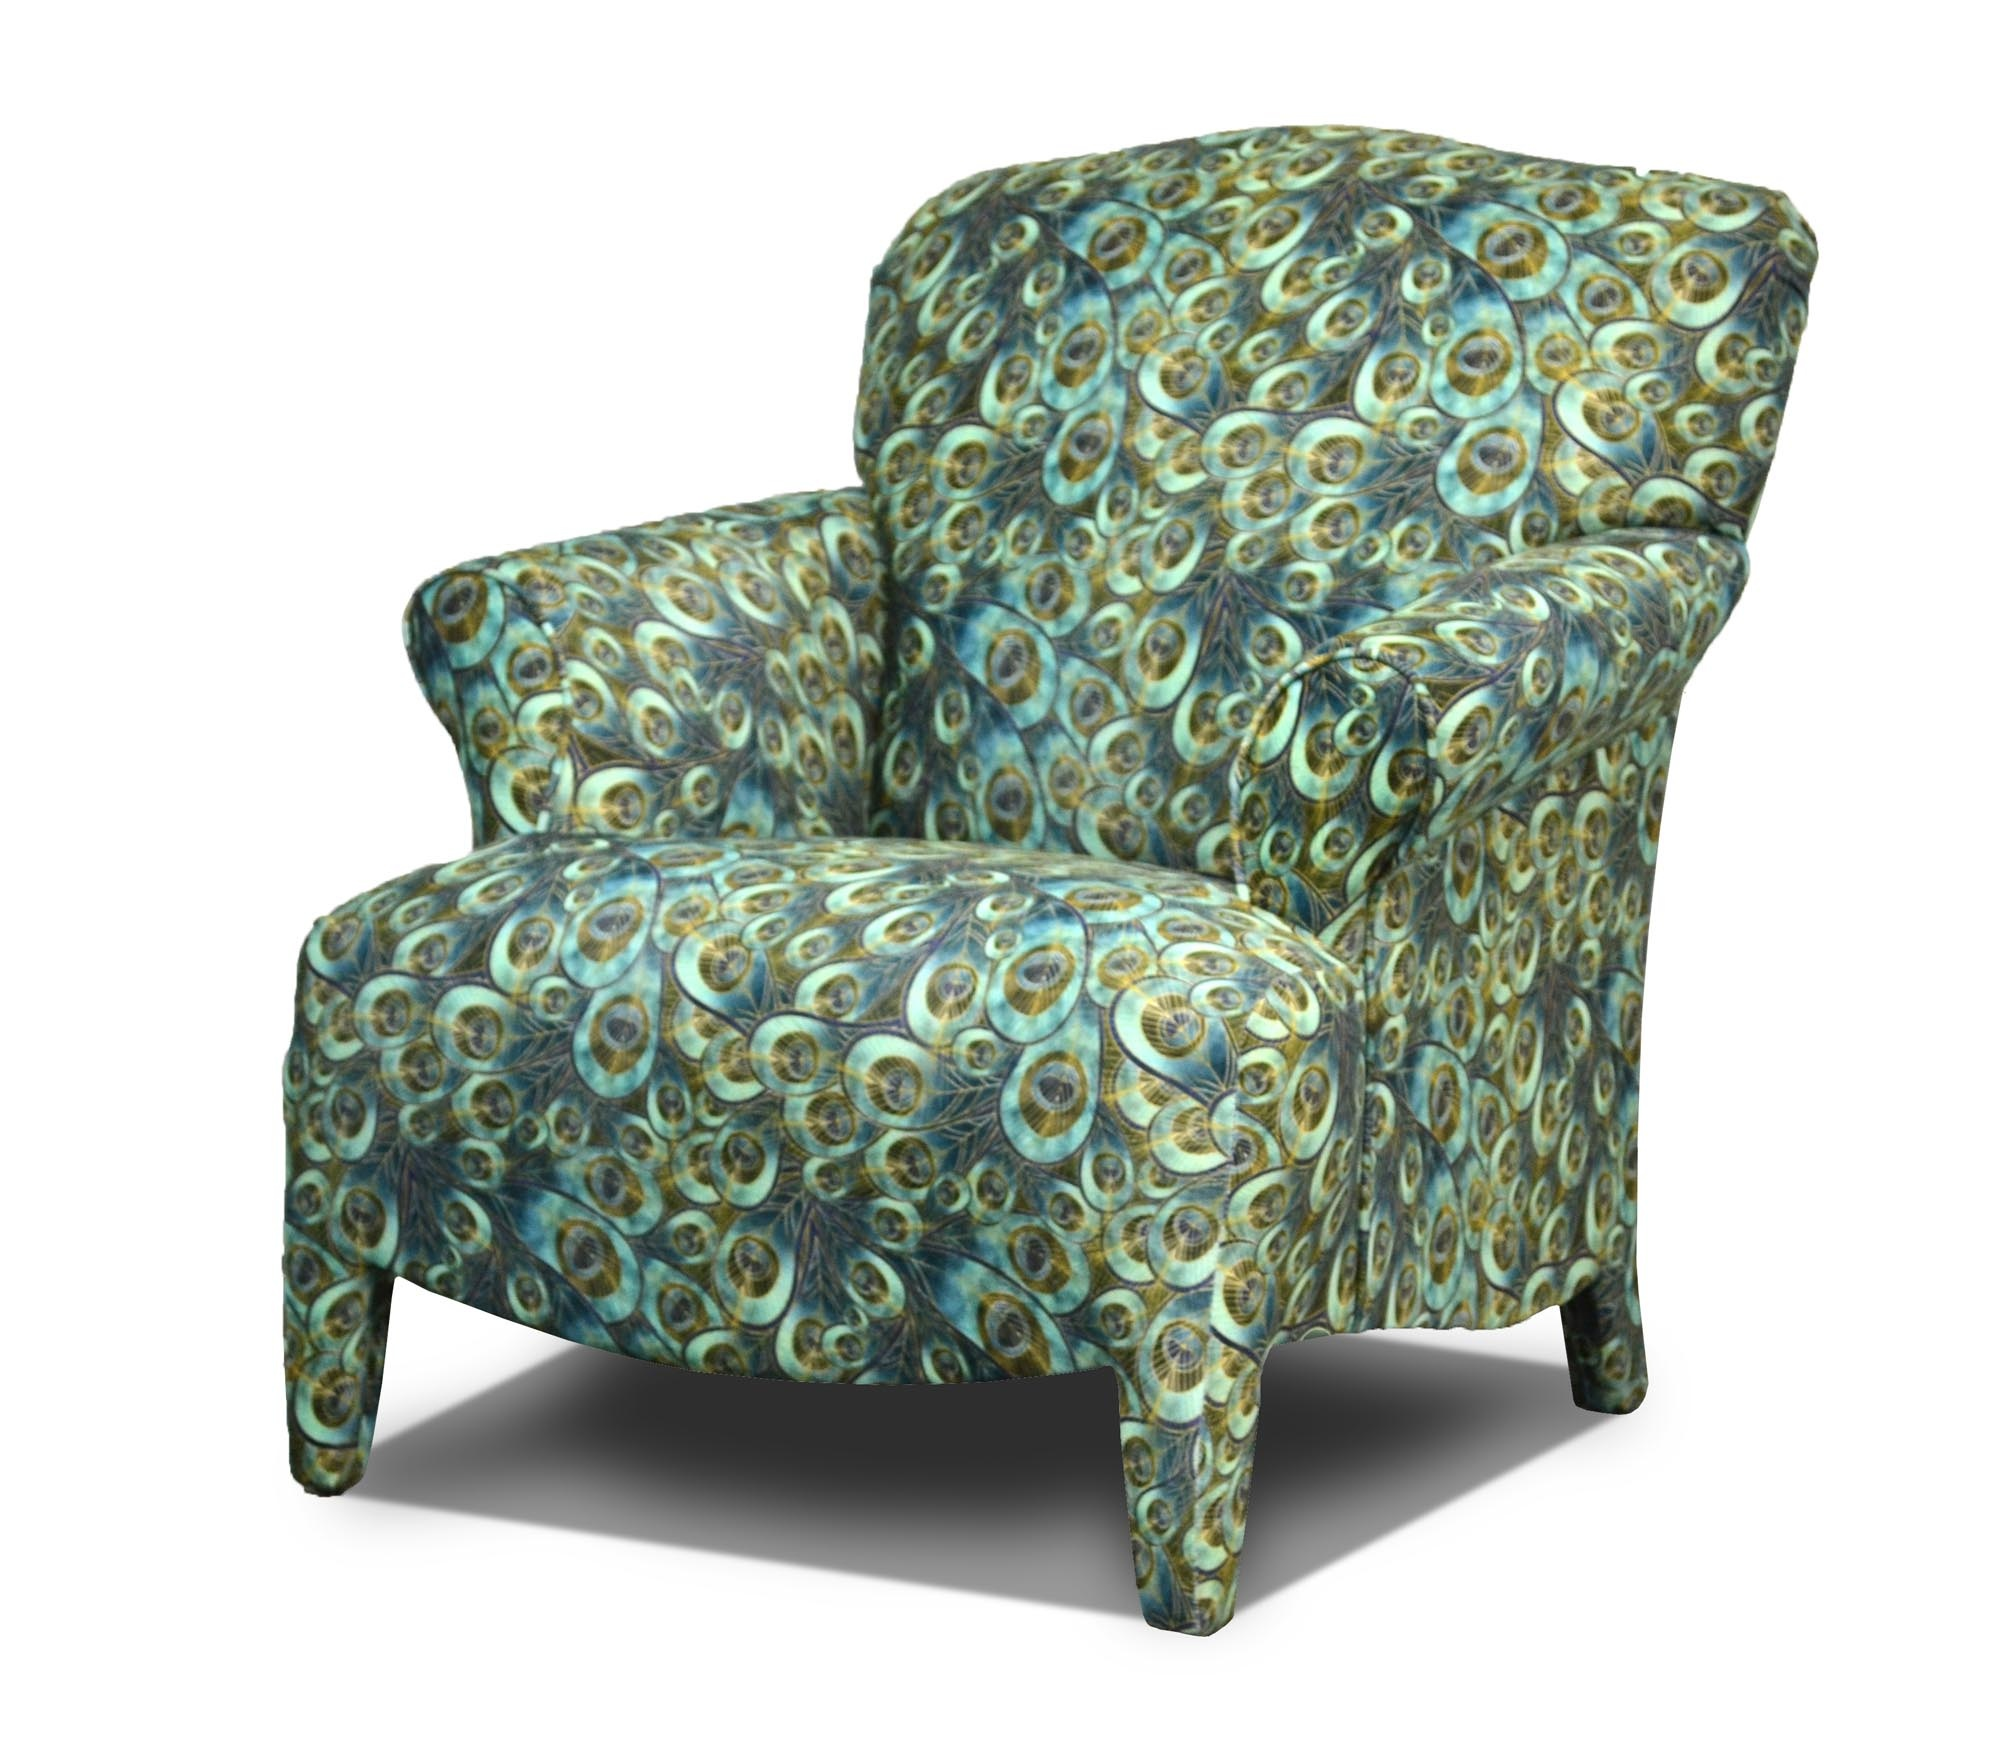 Furniture Clearance Center Accent Chairs : LR100pranceteal 2000x1754 from www.furniturelanddist.com size 2000 x 1754 jpeg 379kB